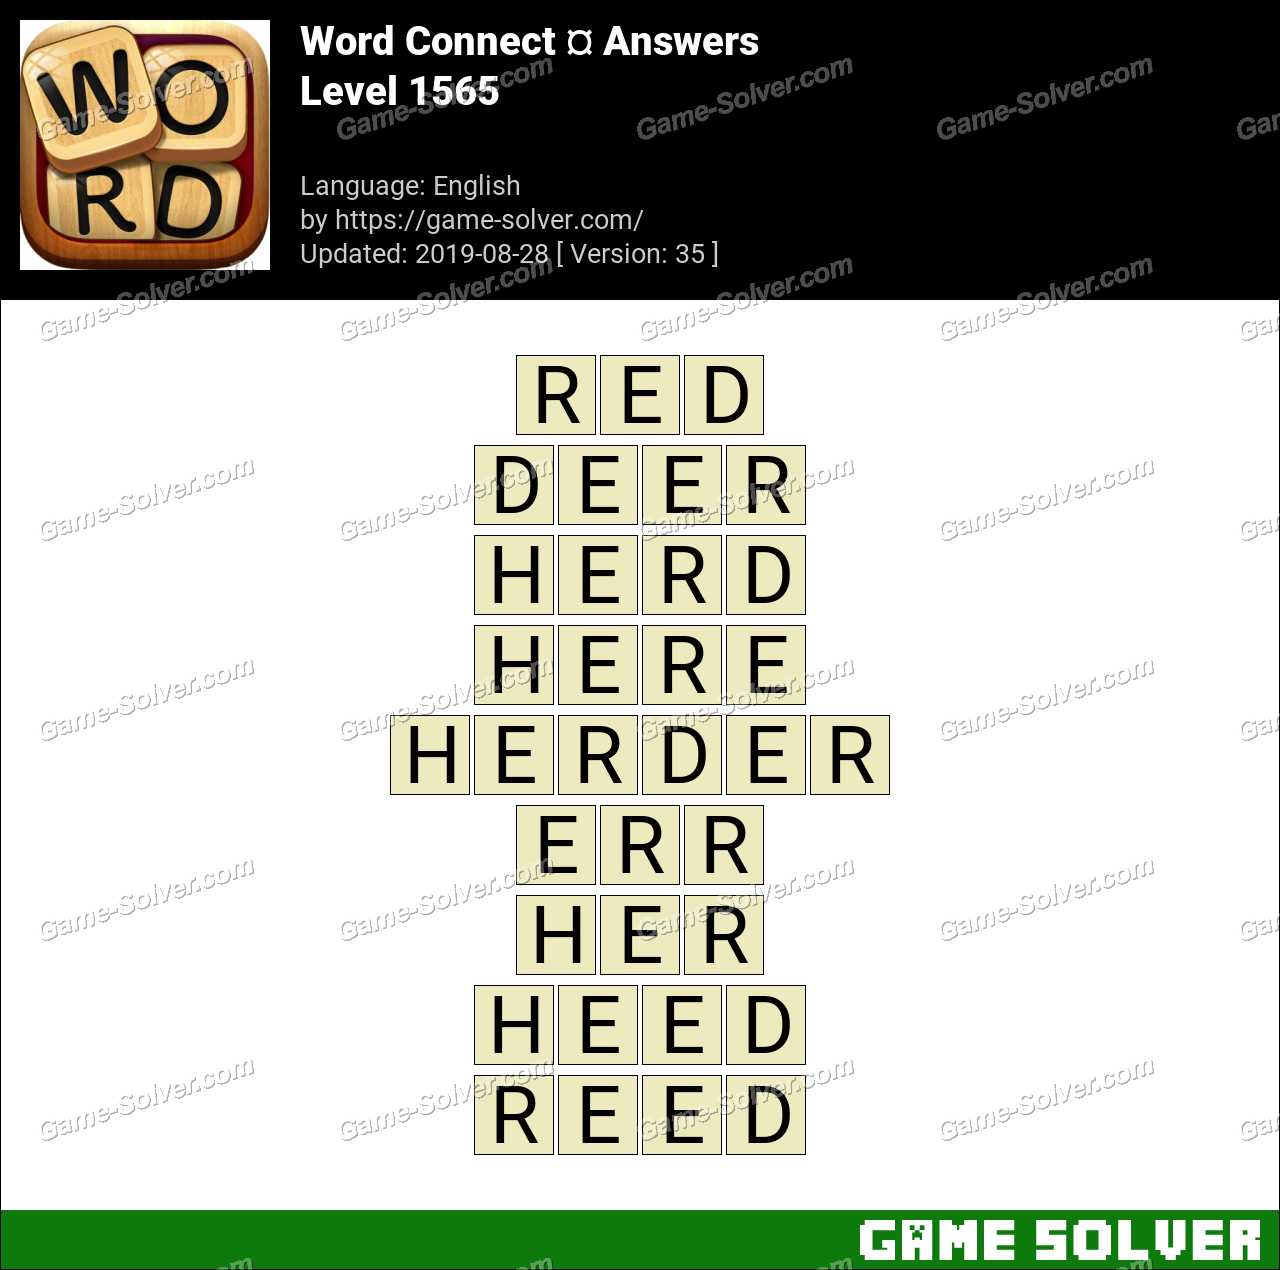 Word Connect Level 1565 Answers